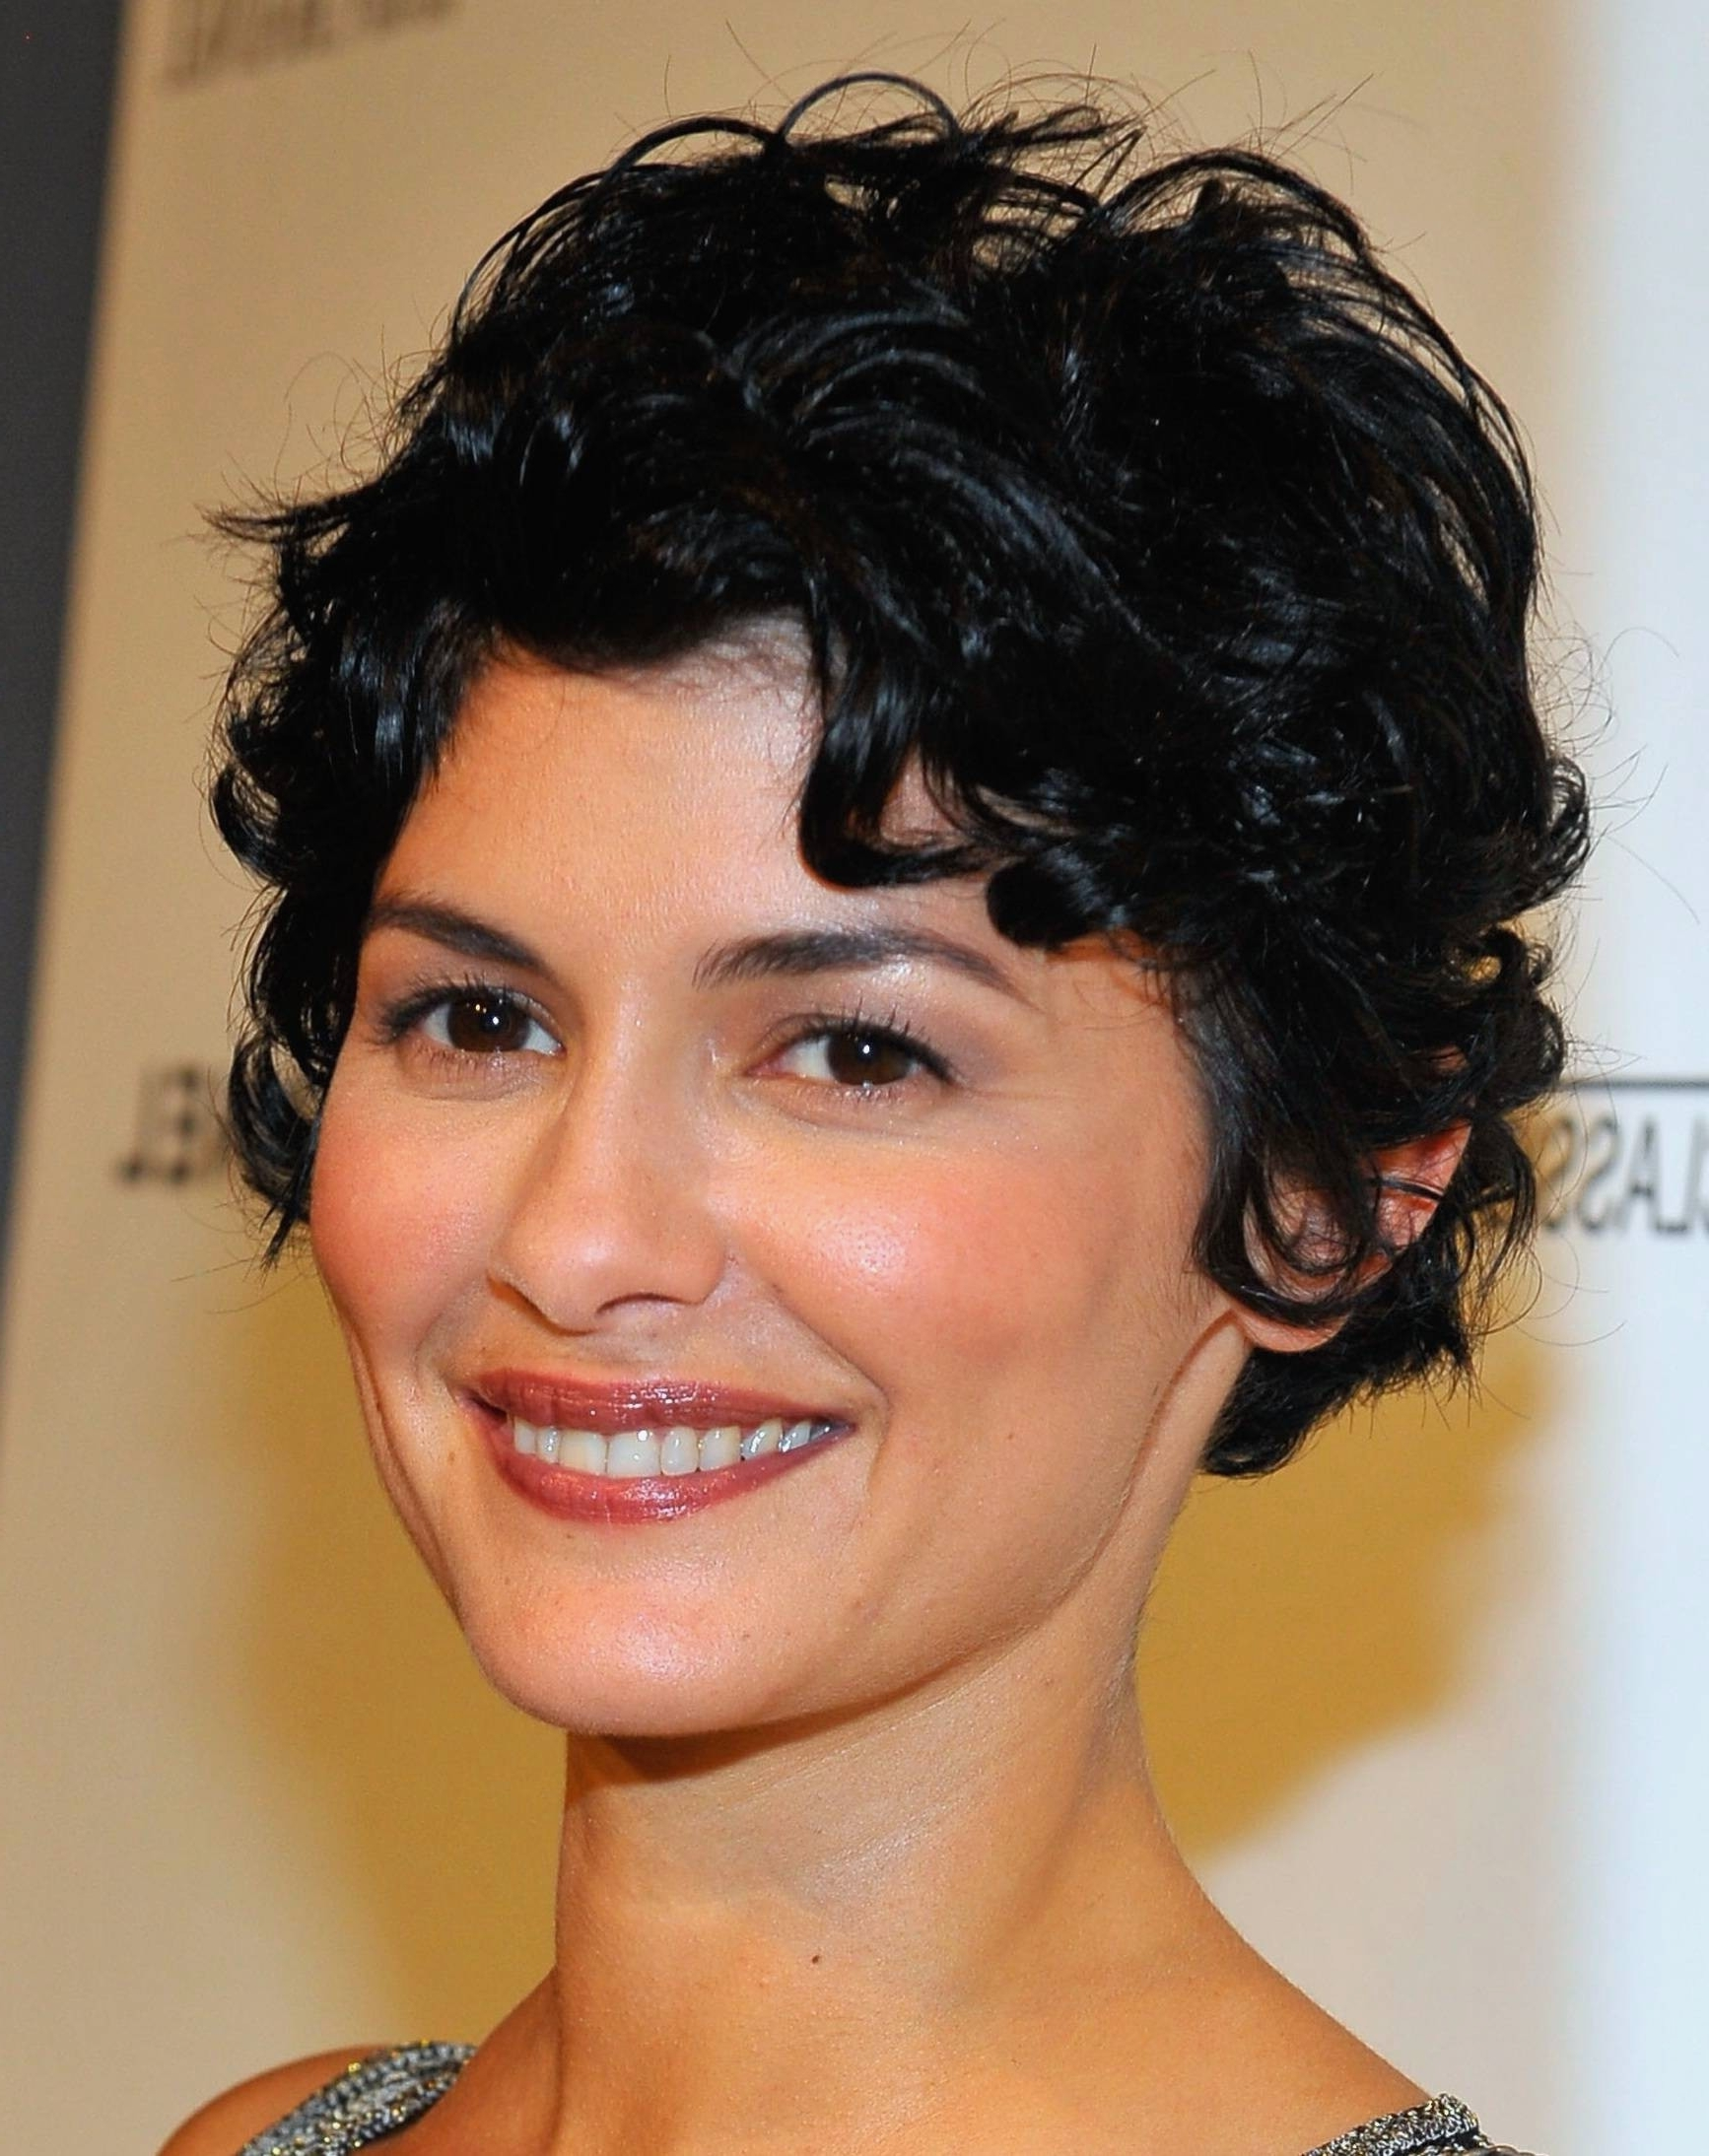 Curly Hairstyles : New Pixie Hairstyles For Thick Curly Hair In Most Up To Date Pixie Hairstyles For Curly Hair (View 8 of 15)